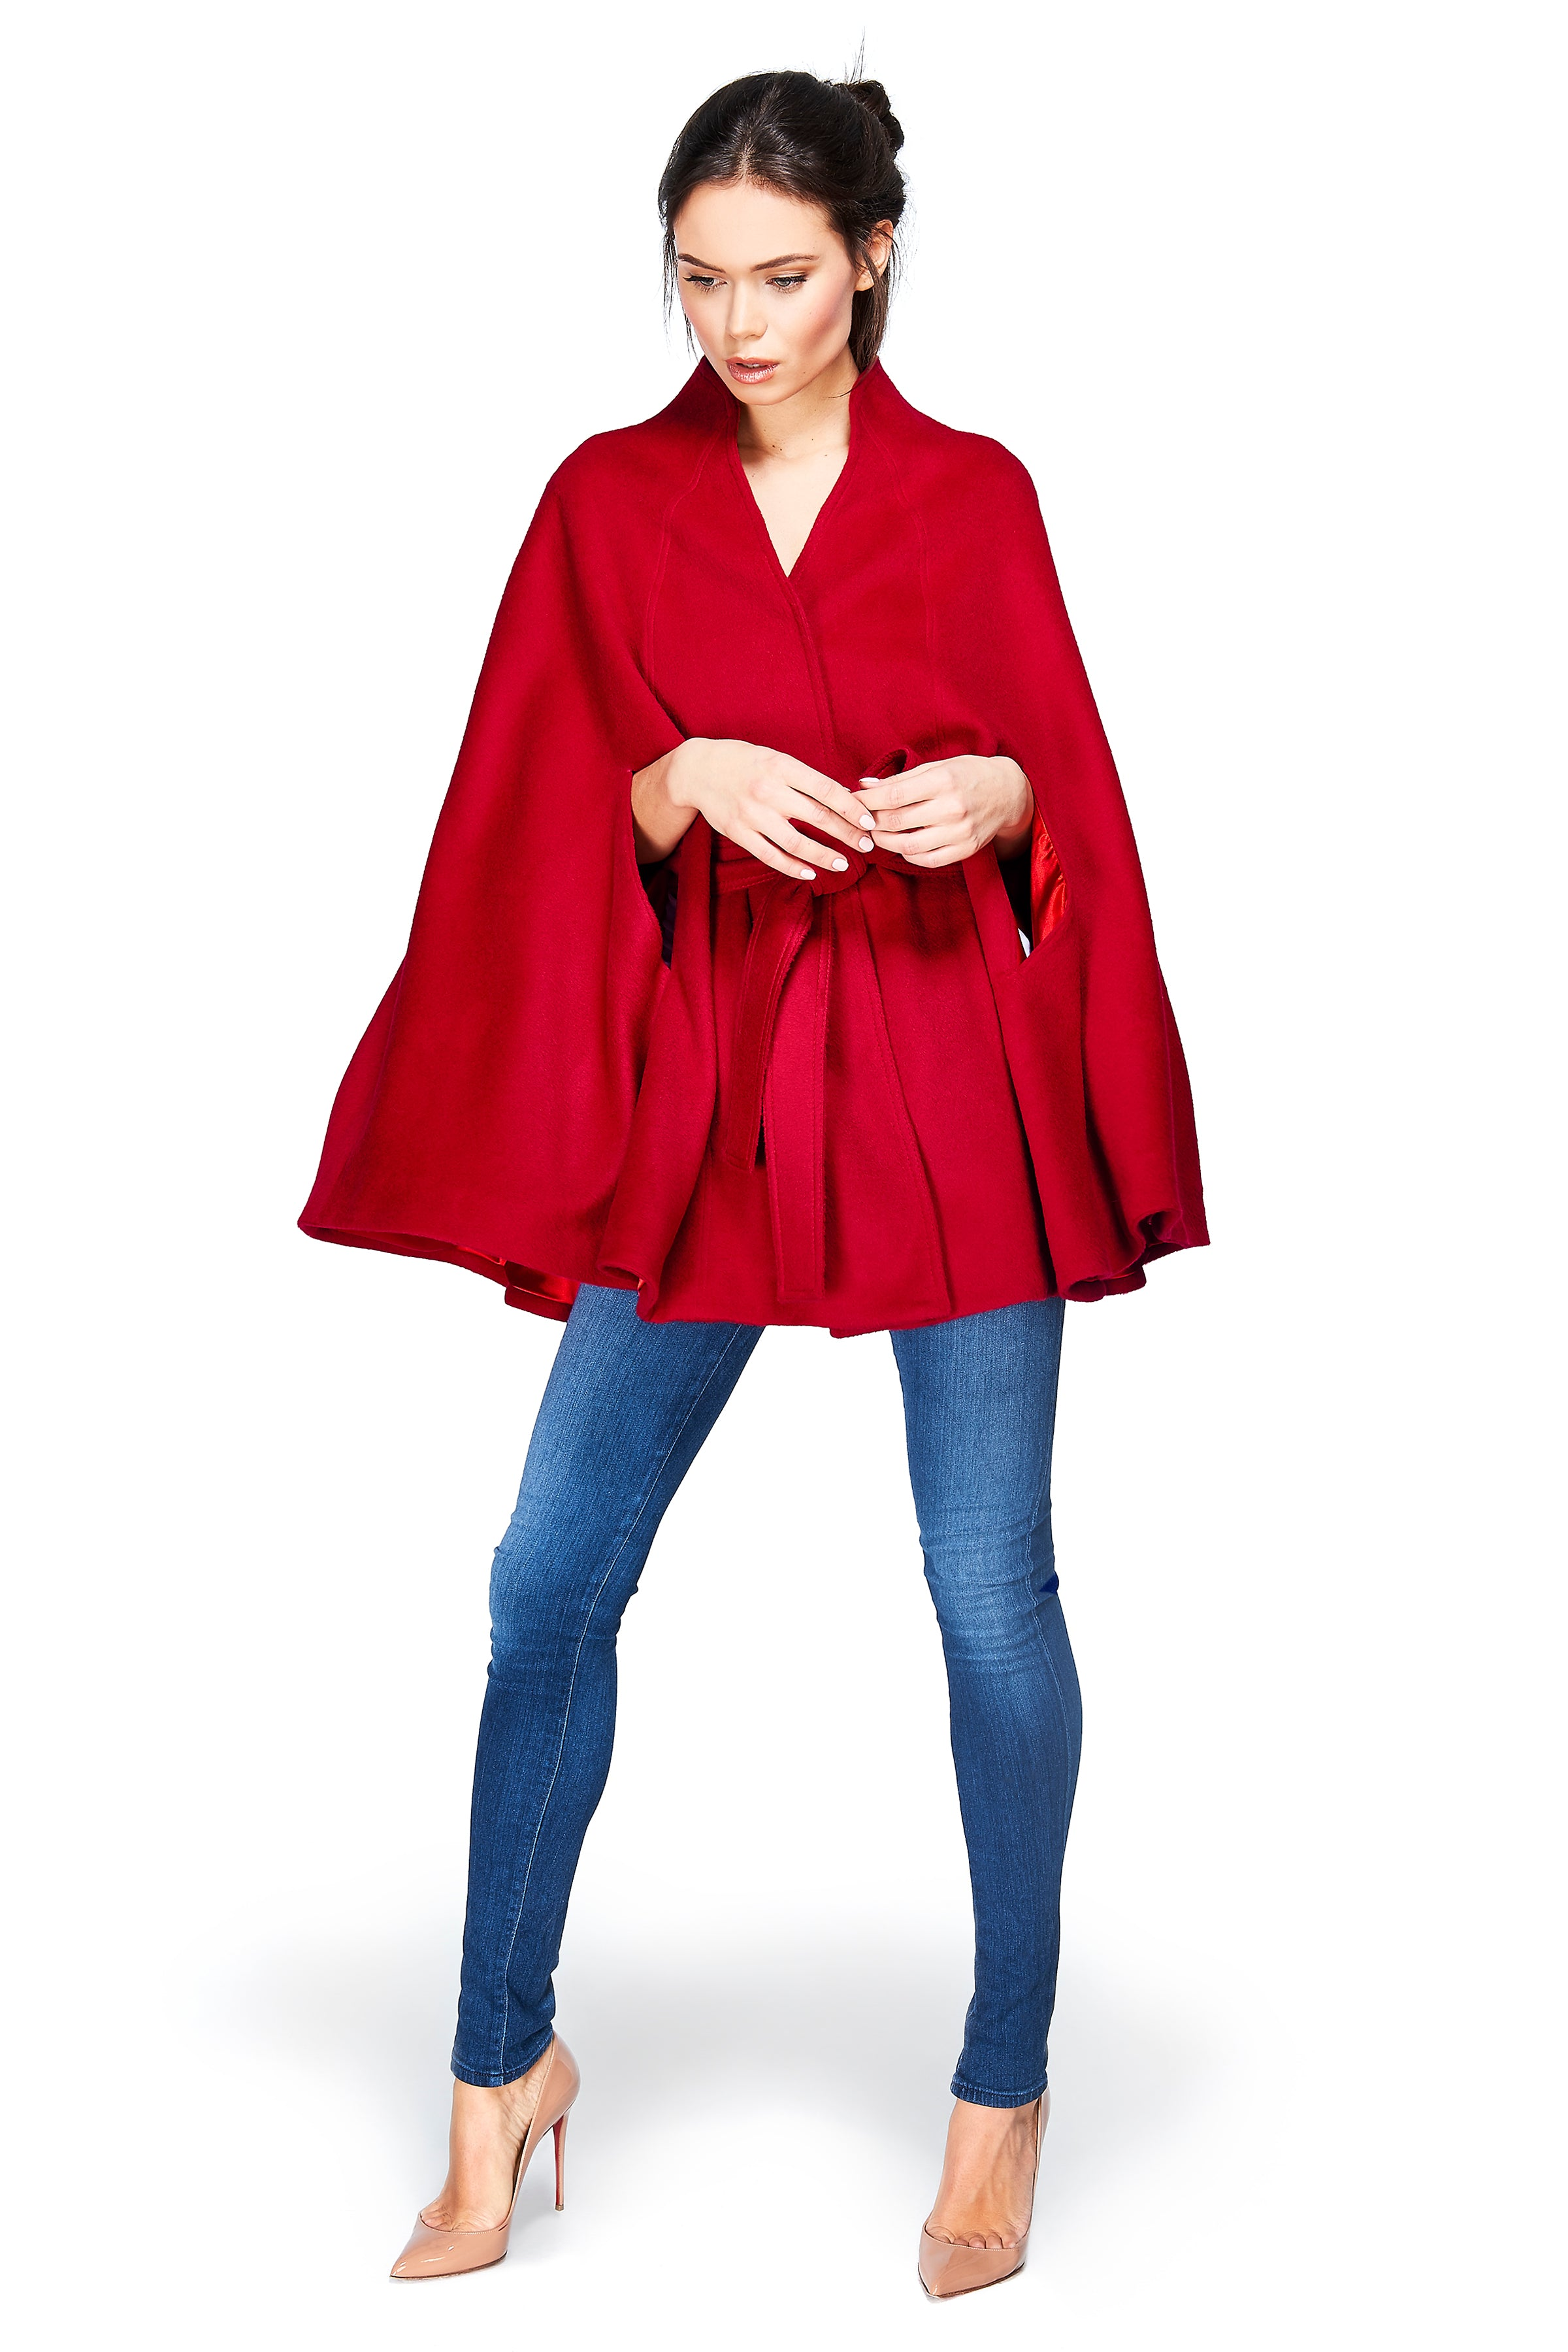 Stand Collar Cape Scarlet Red